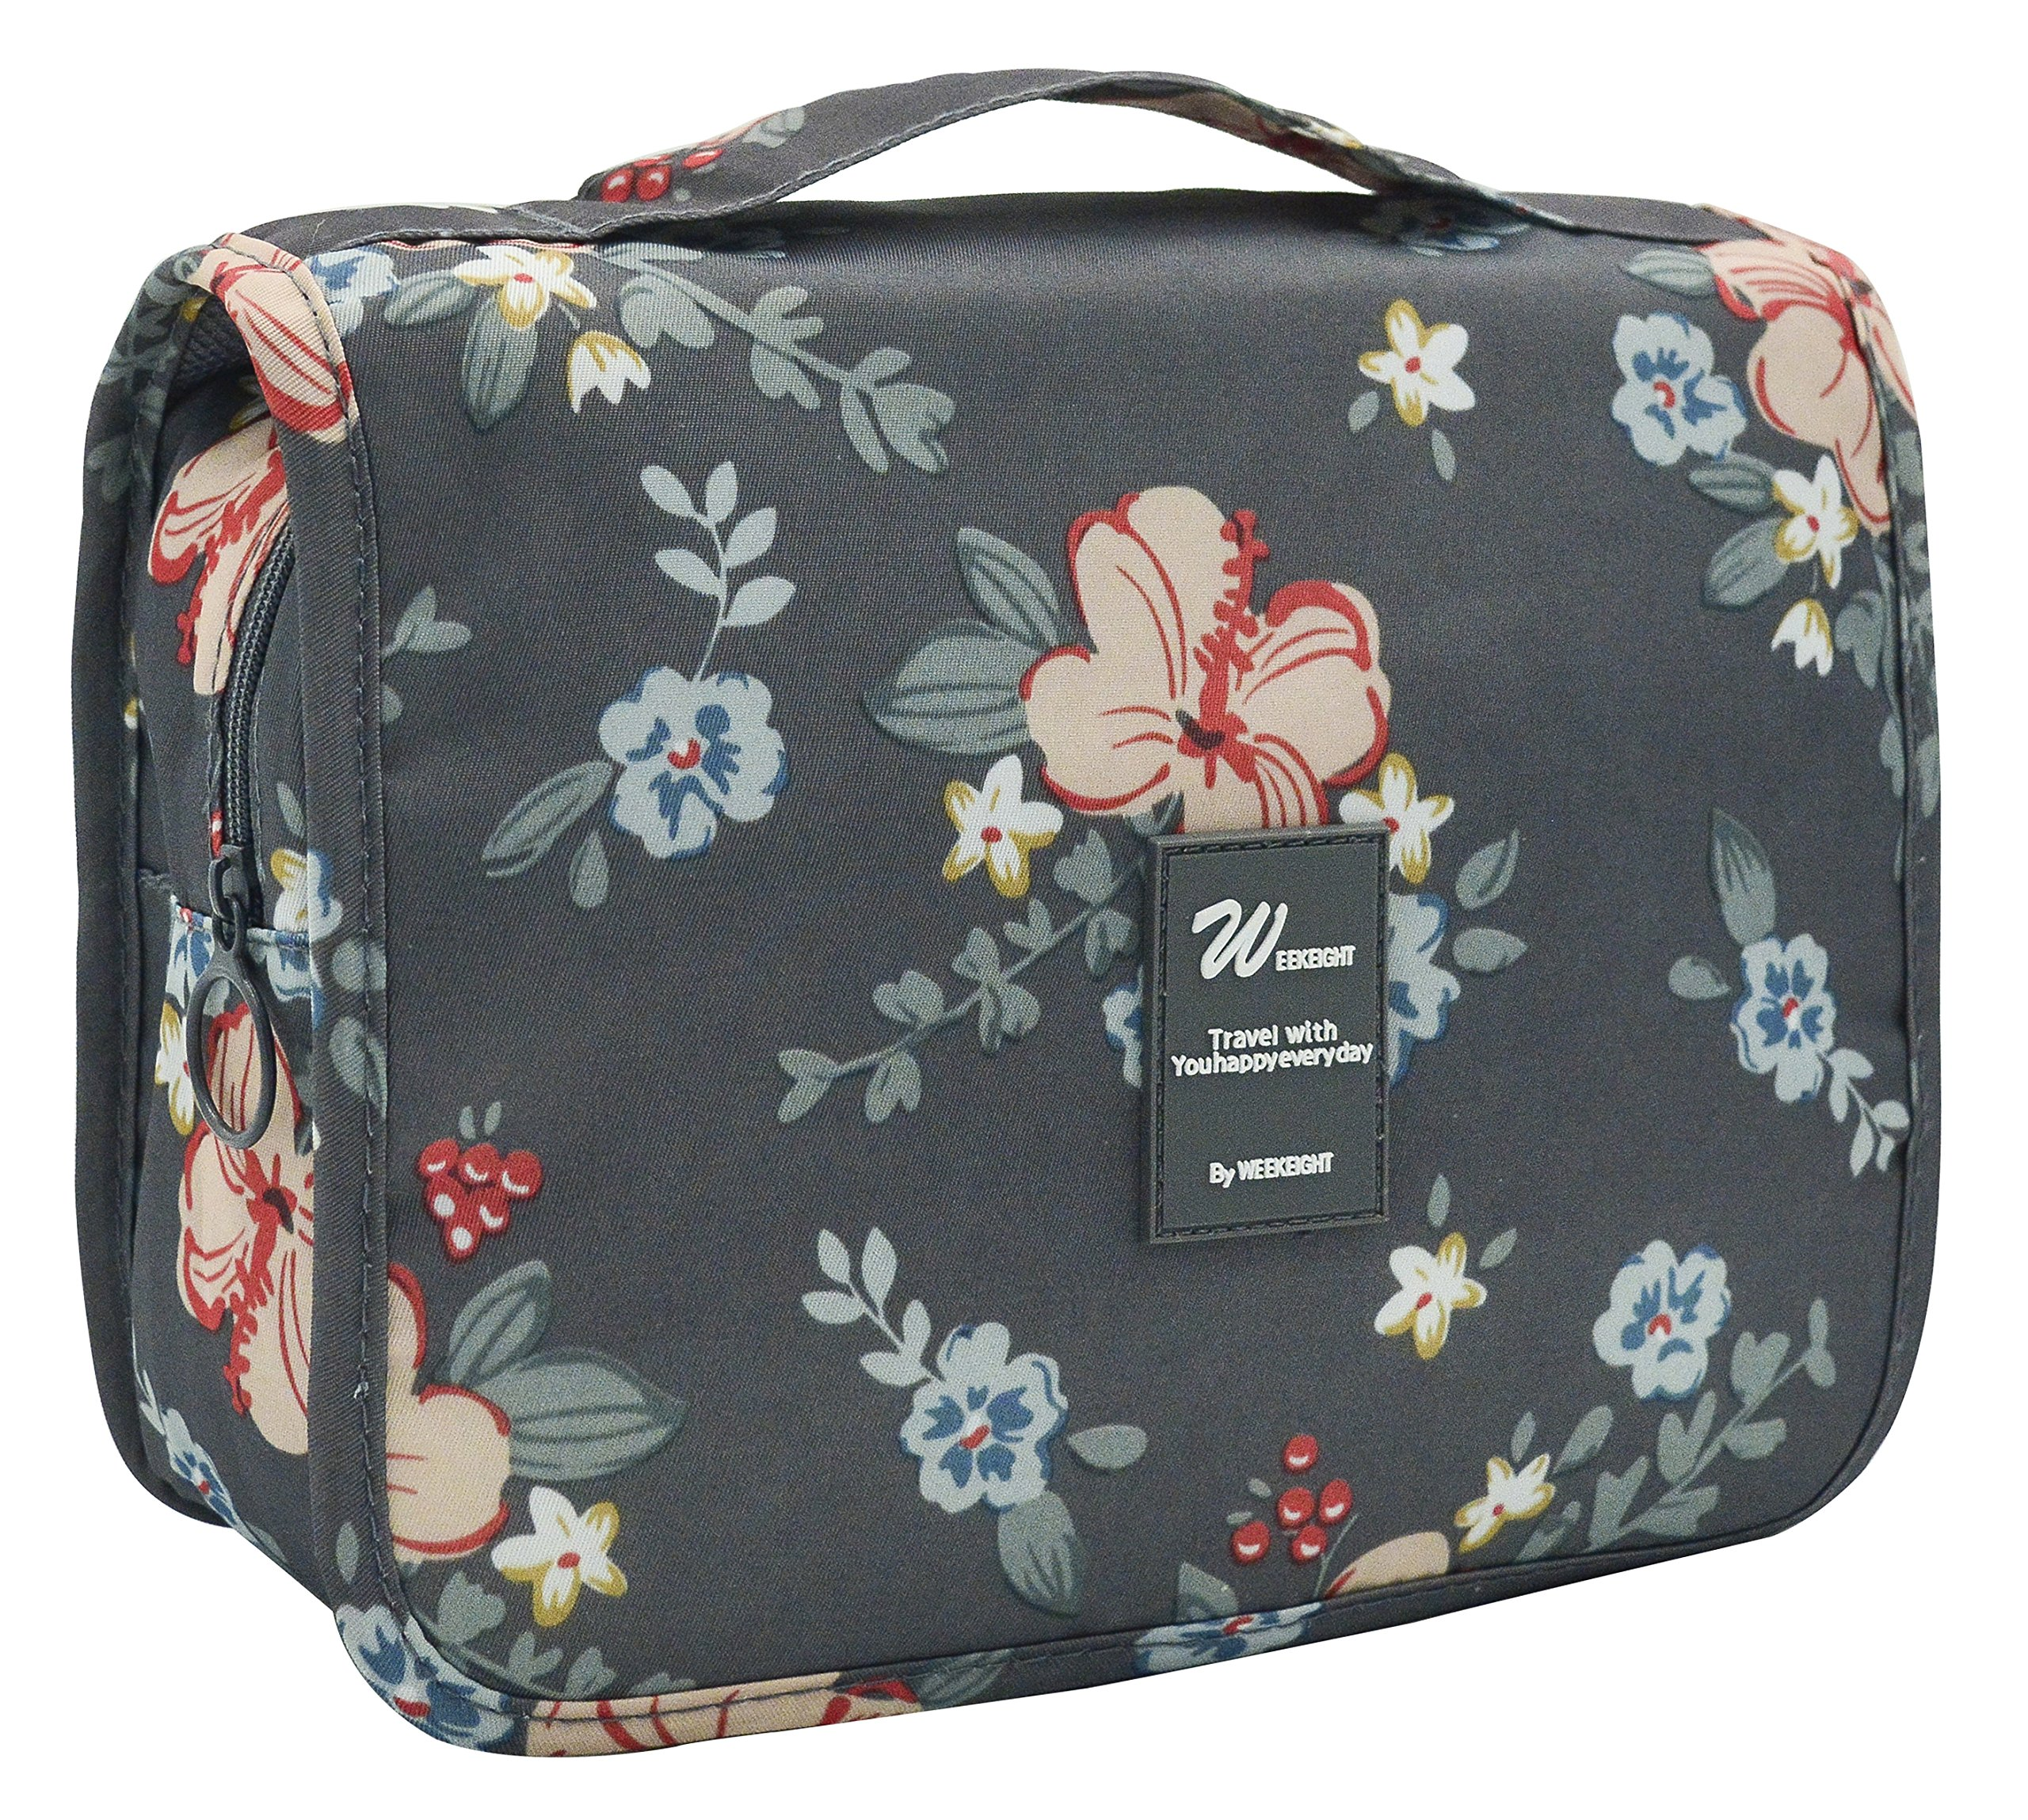 Portable Hanging Travel Toiletry Bag Waterproof Makeup Organizer Cosmetic Bag Pouch For Women Girl (Deep Grey Flowers)